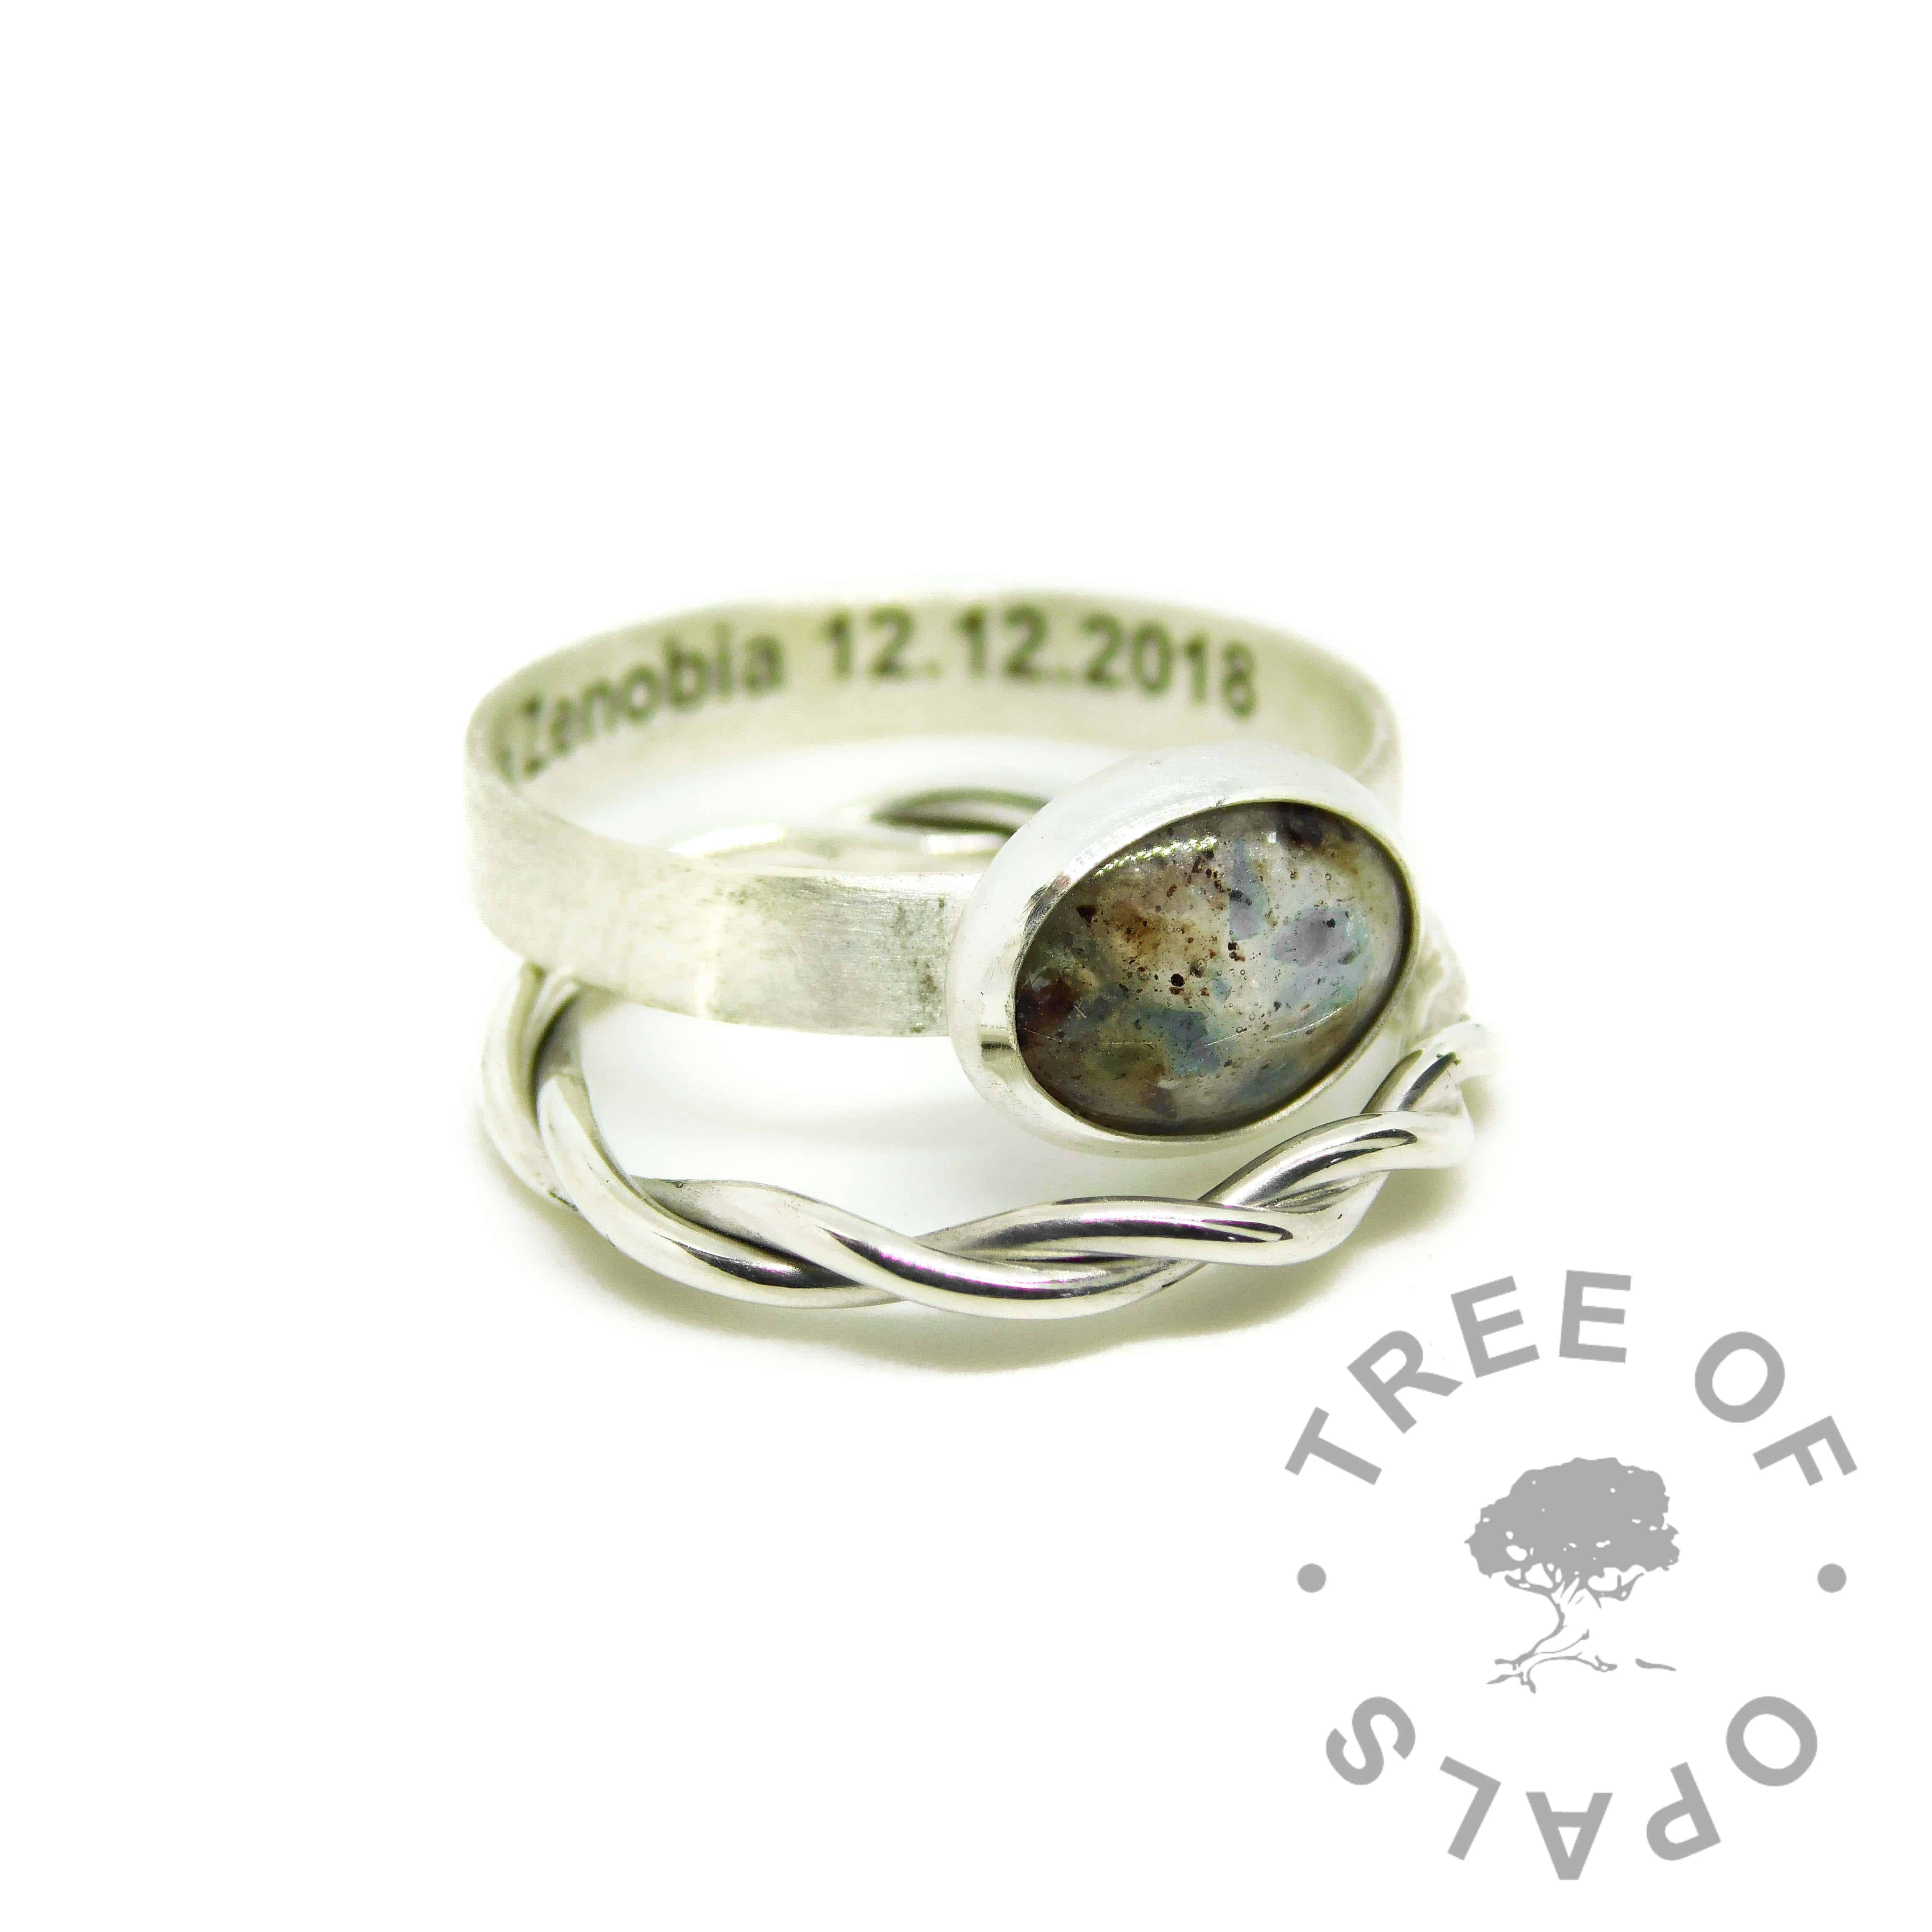 umbilical cord ring with December birthstone, engraved inside in arial font and twisted stacker